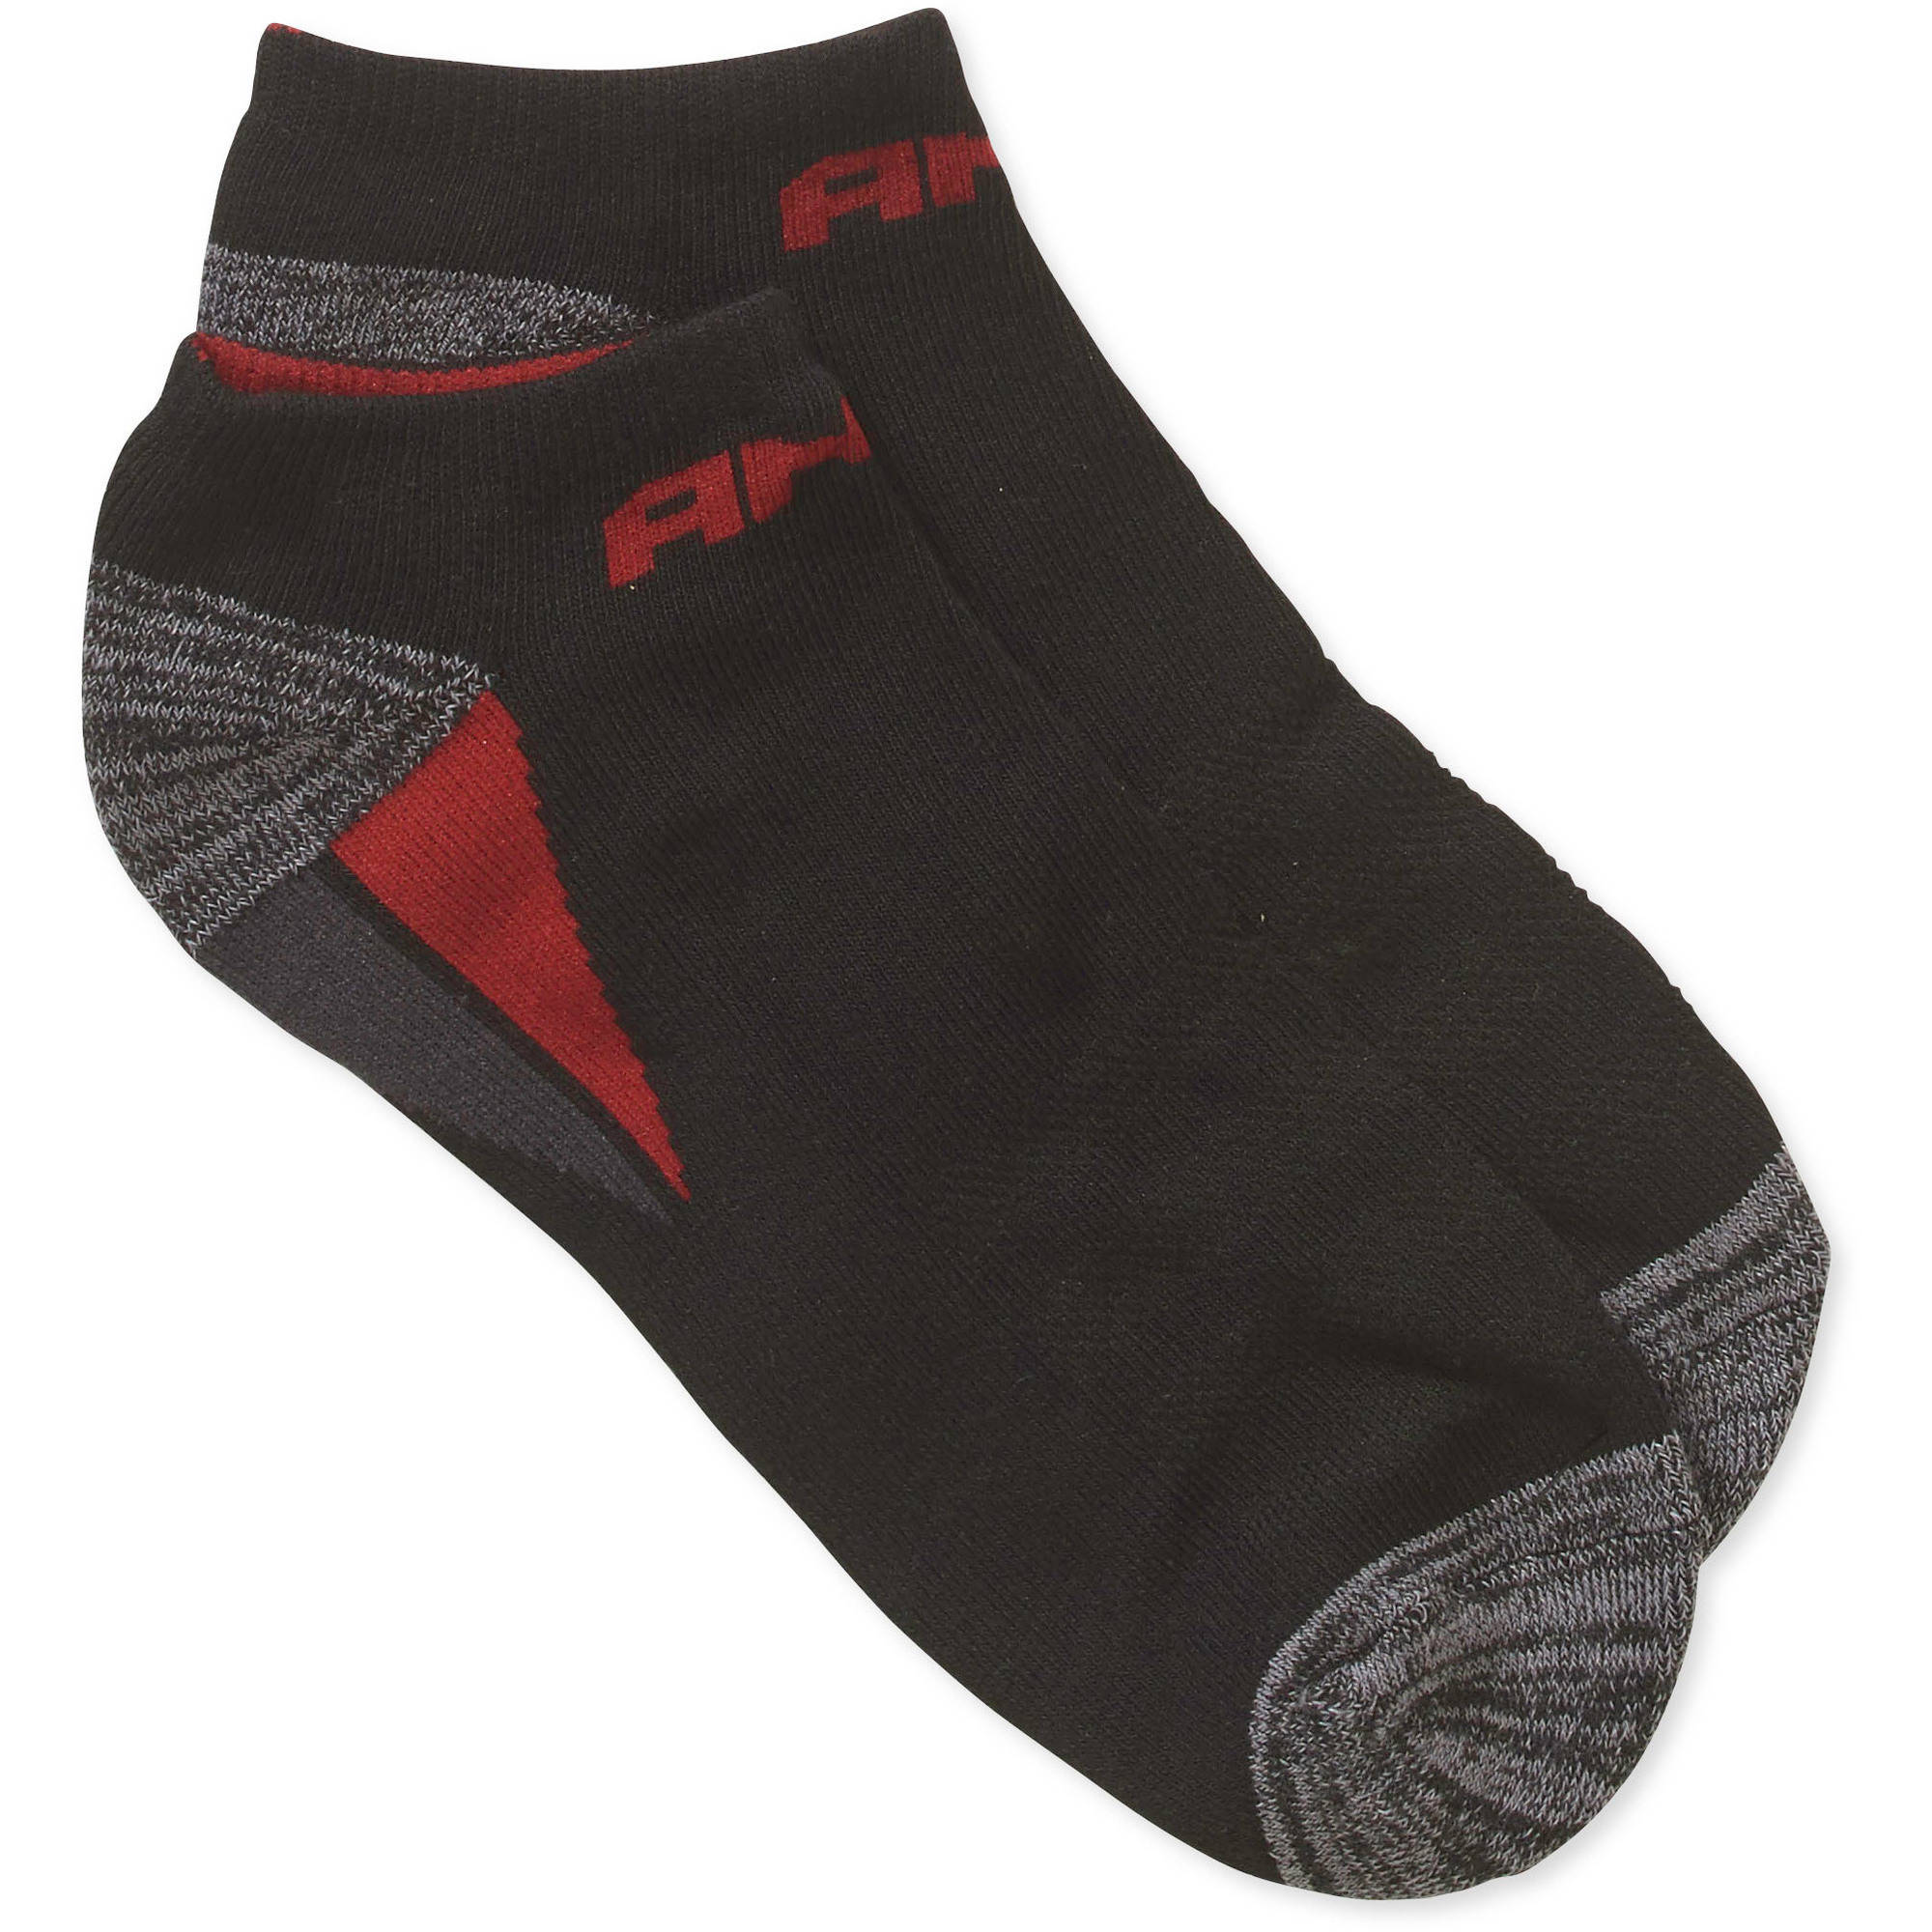 AND1 Men's Cushion Low Cut Socks 3 Pack